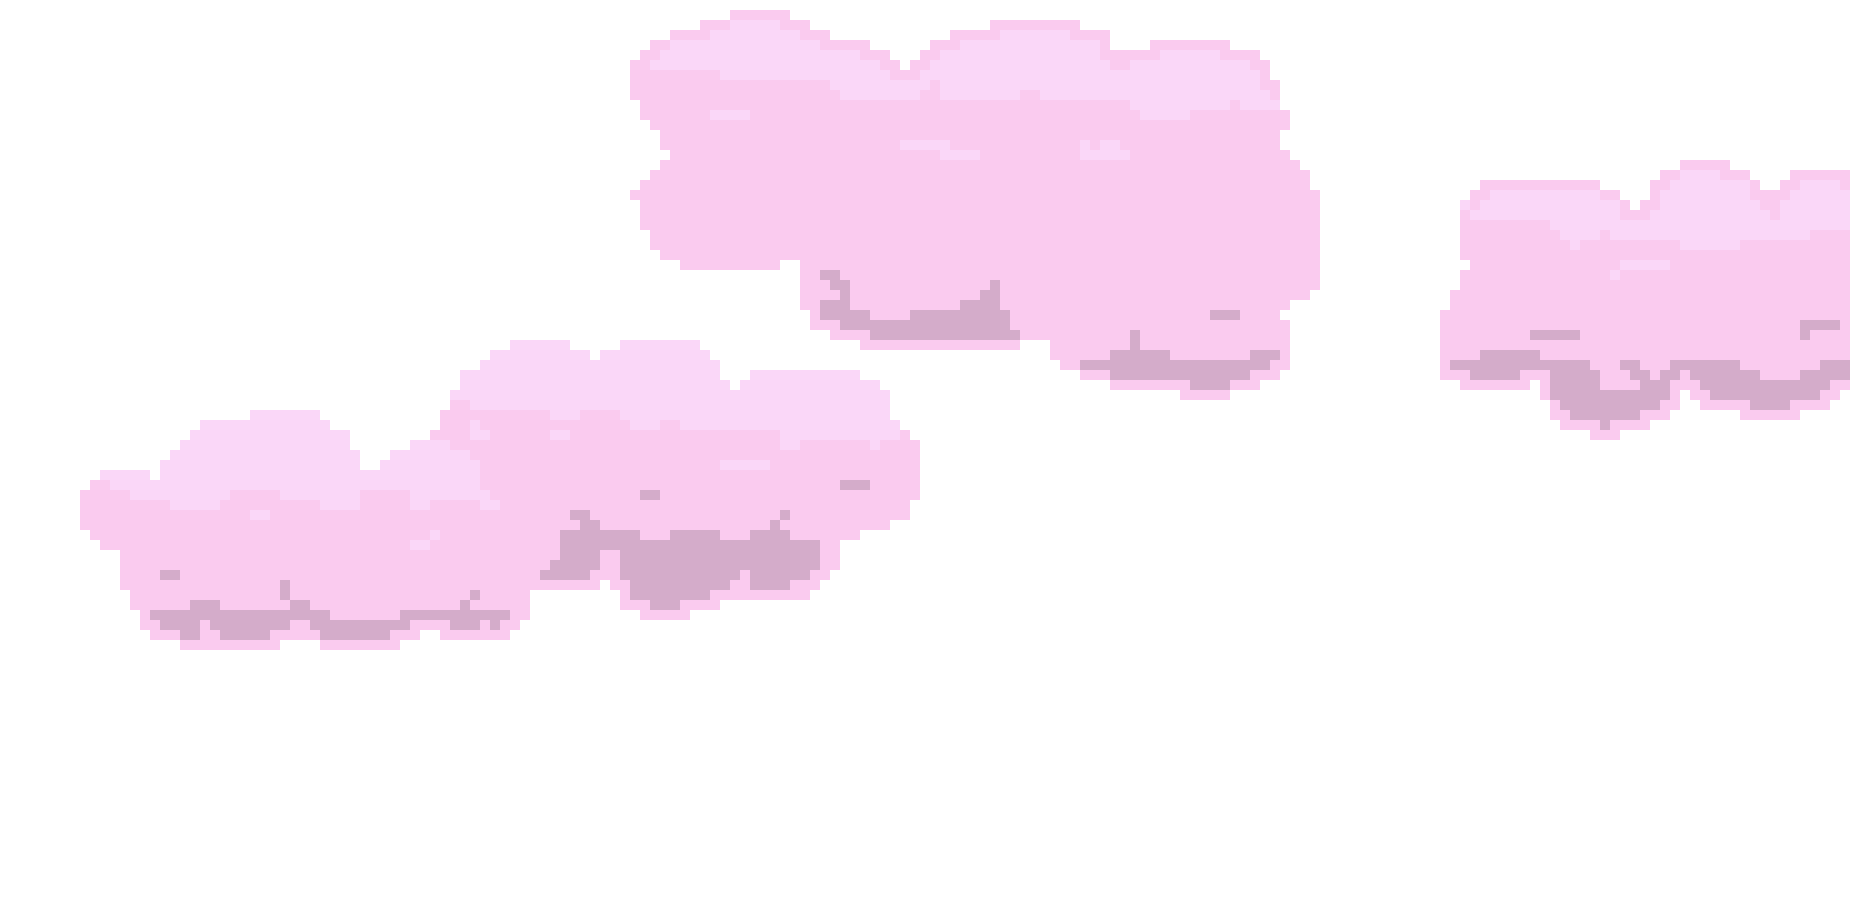 Pixel cloud clipart vector freeuse Pixel cloud clipart images gallery for free download ... vector freeuse